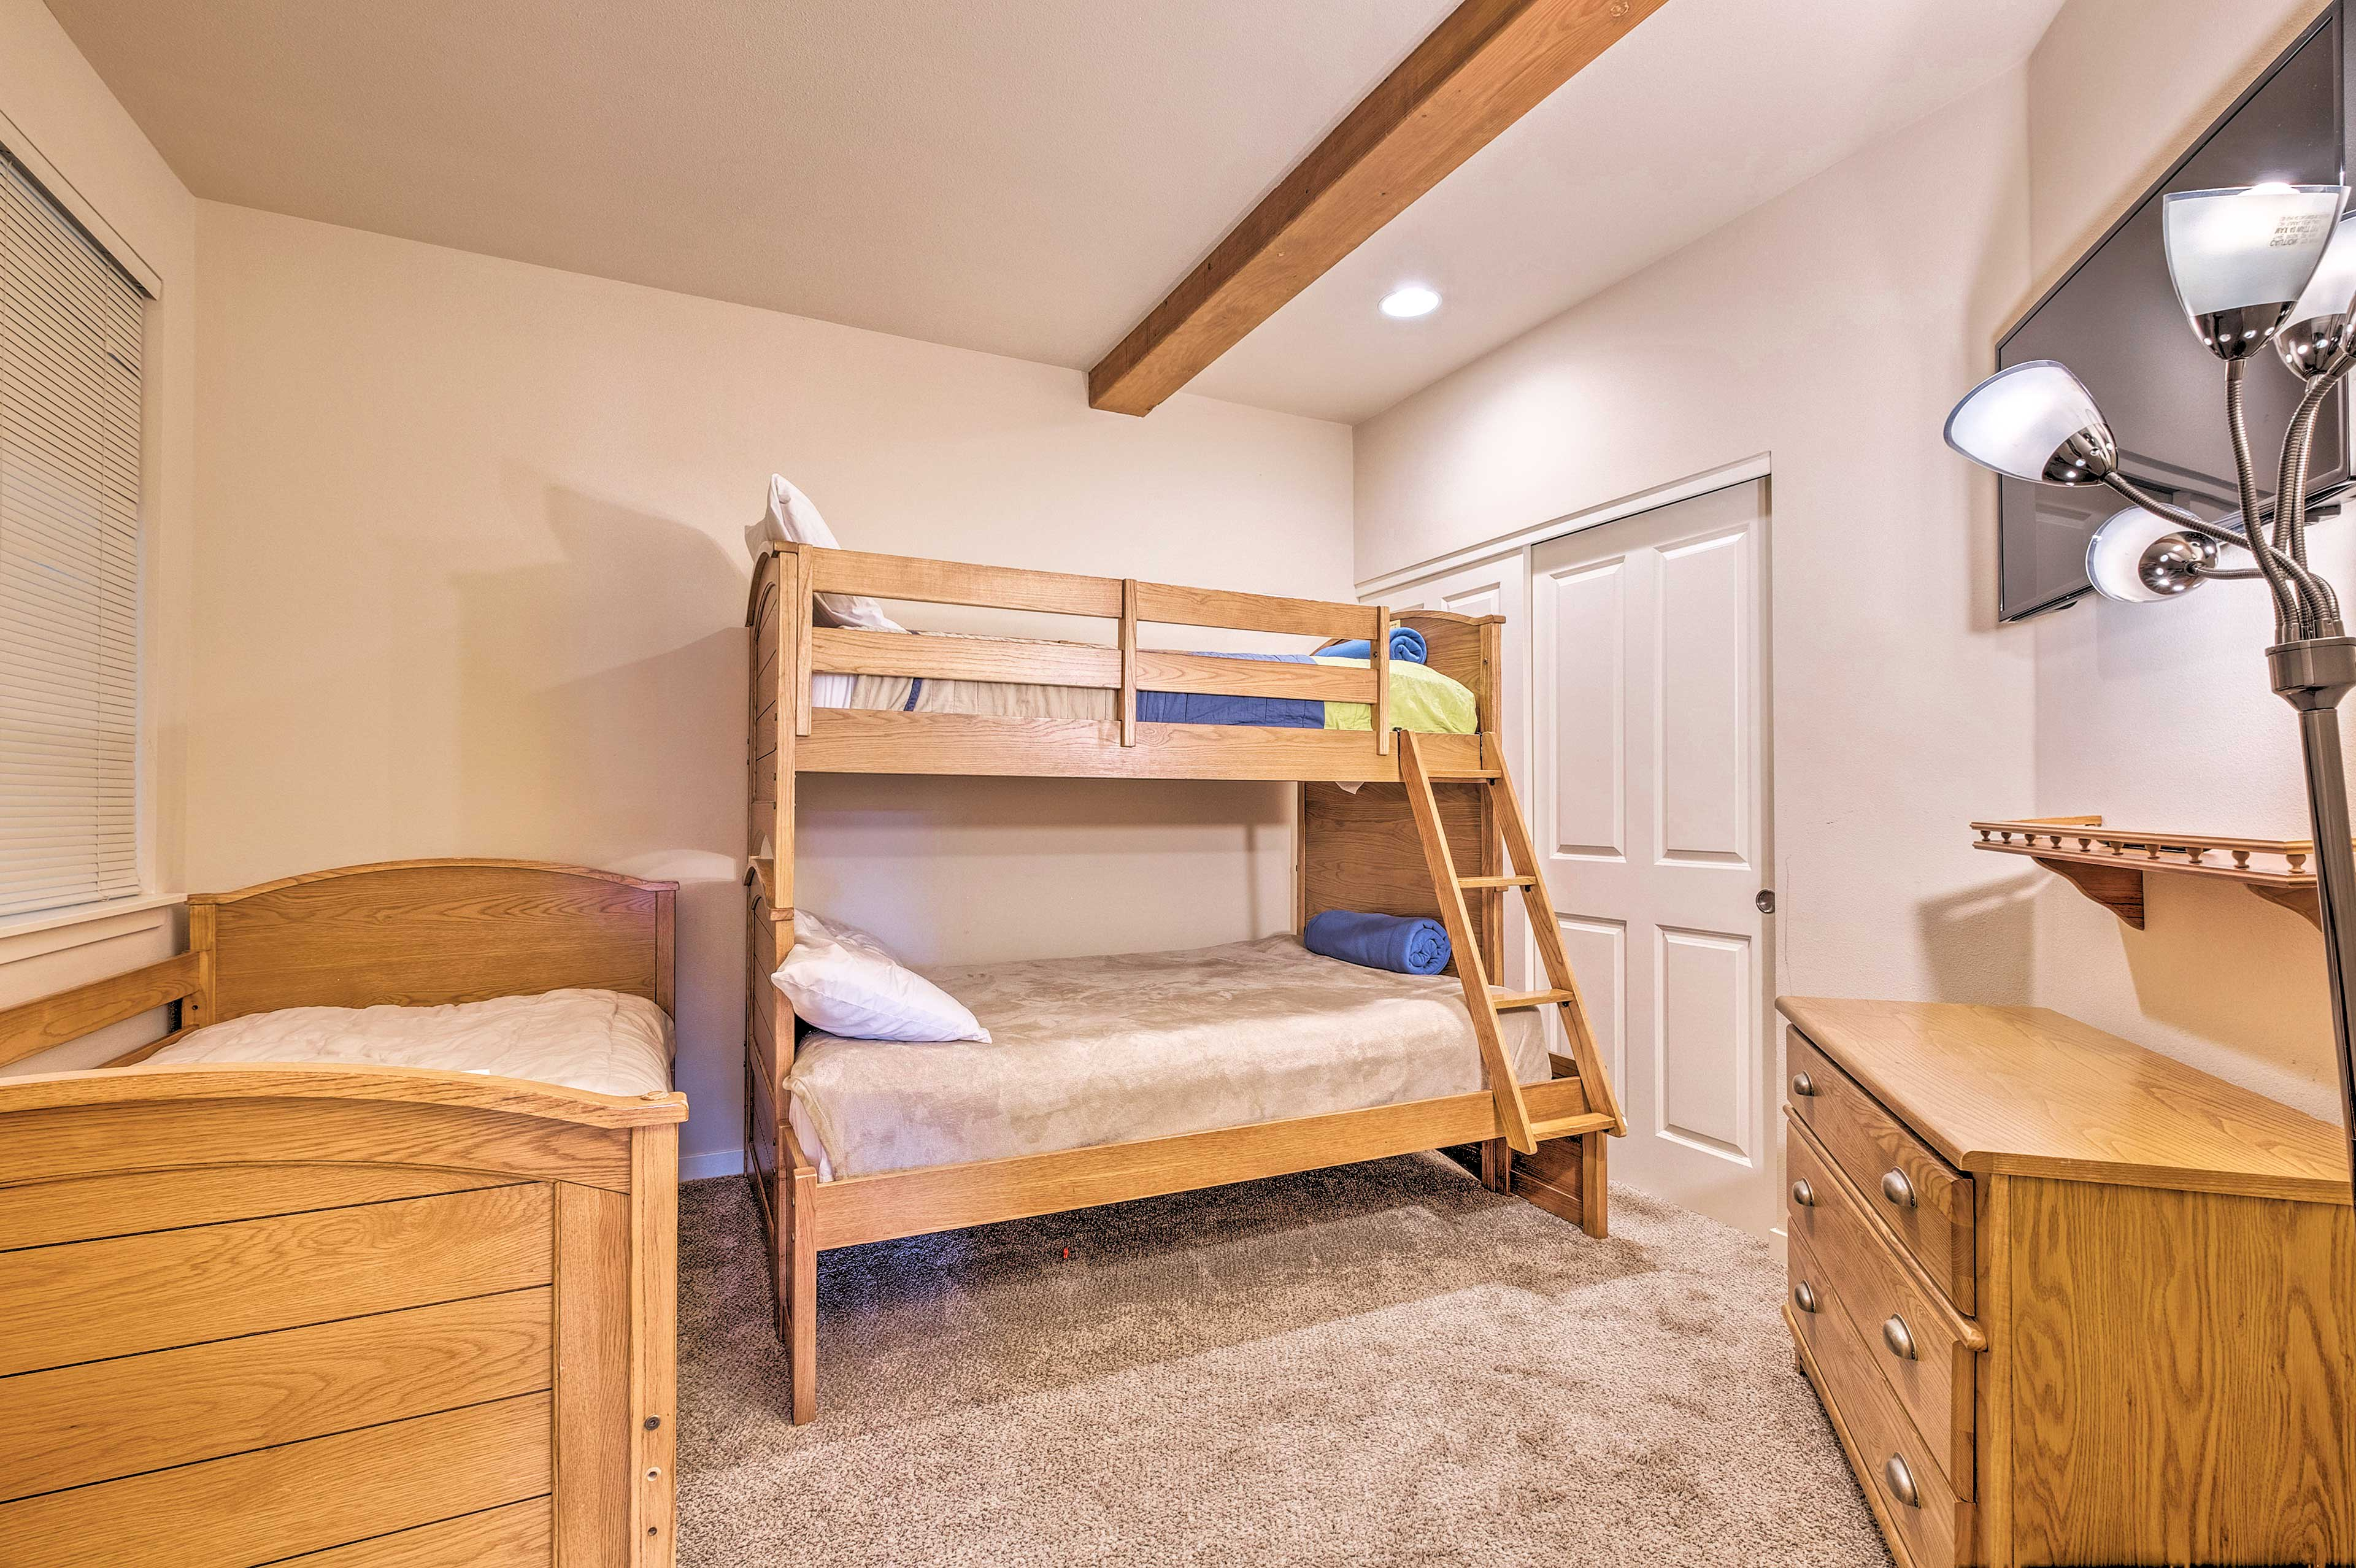 The second bedroom sleeps up to 4.